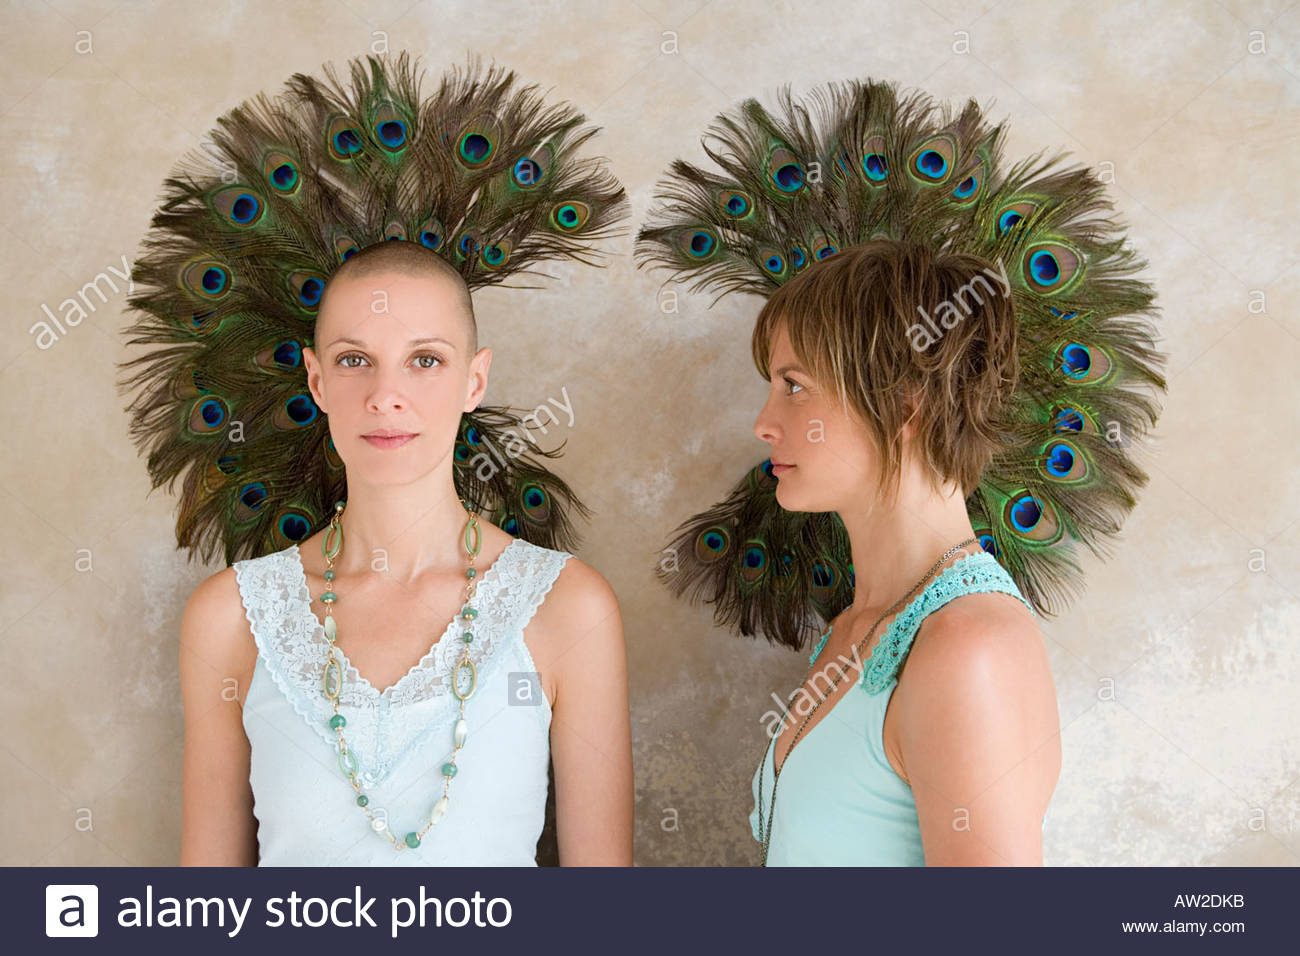 Twin women in front of peacock feathers - Stock Image